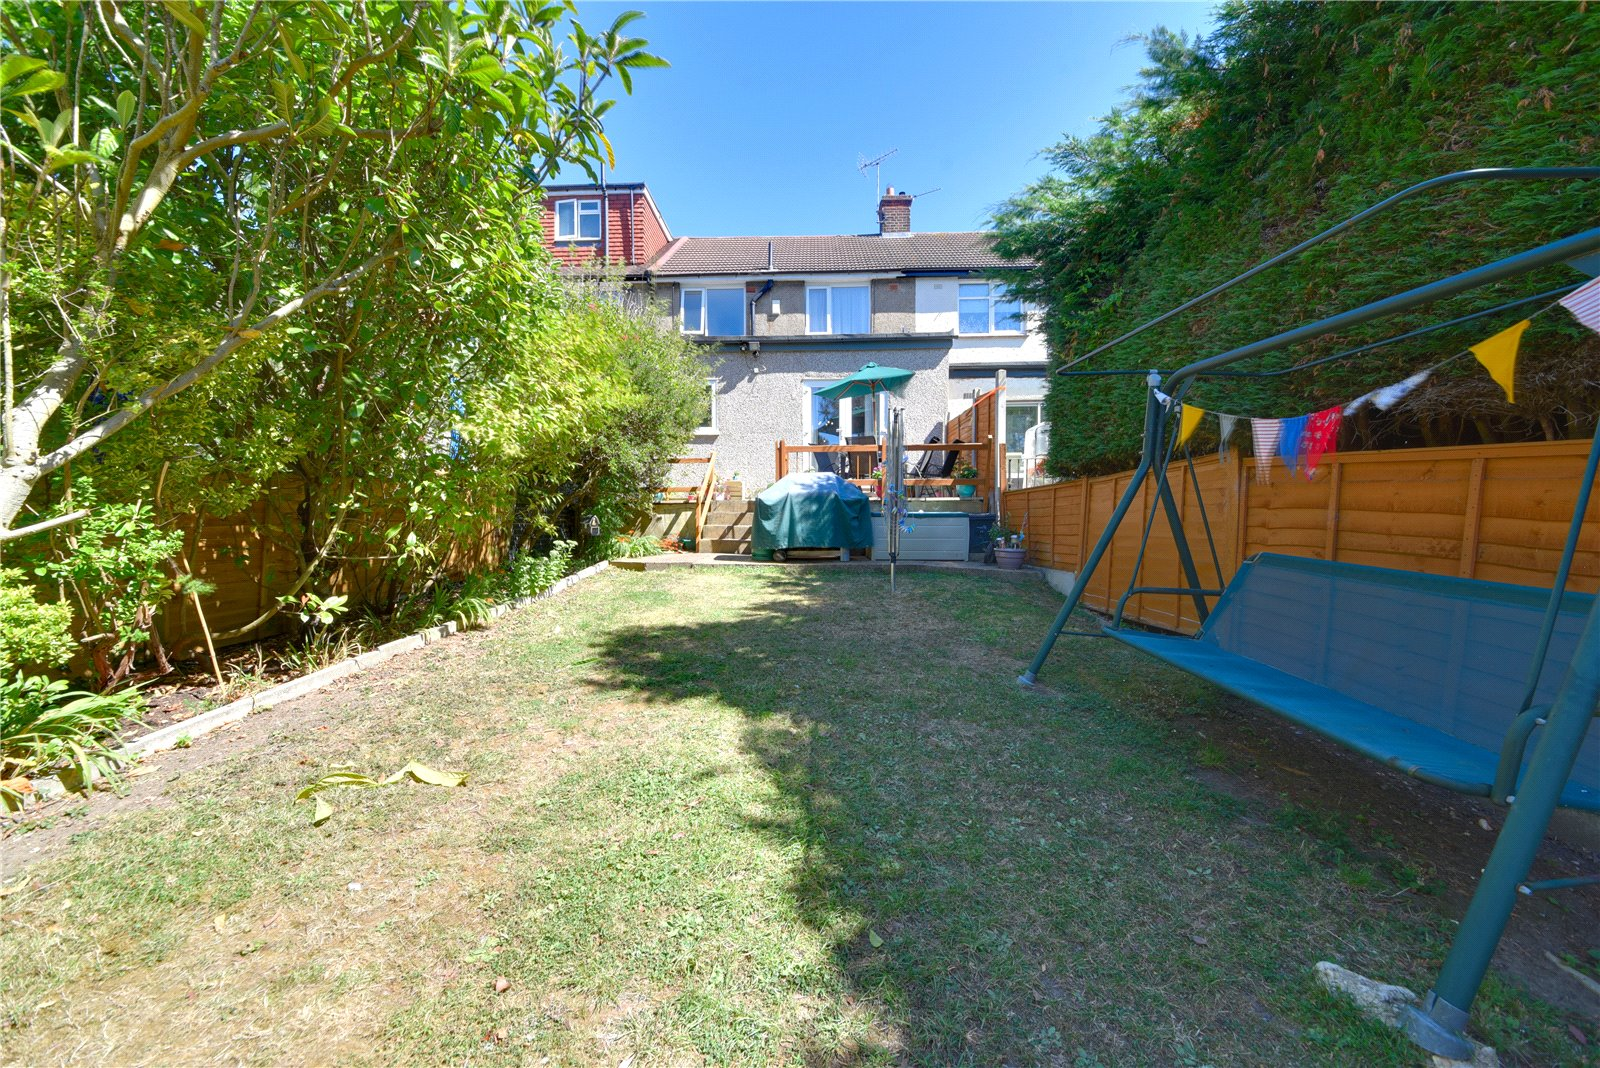 3 bed house for sale in Southgate, N14 4NY  - Property Image 11